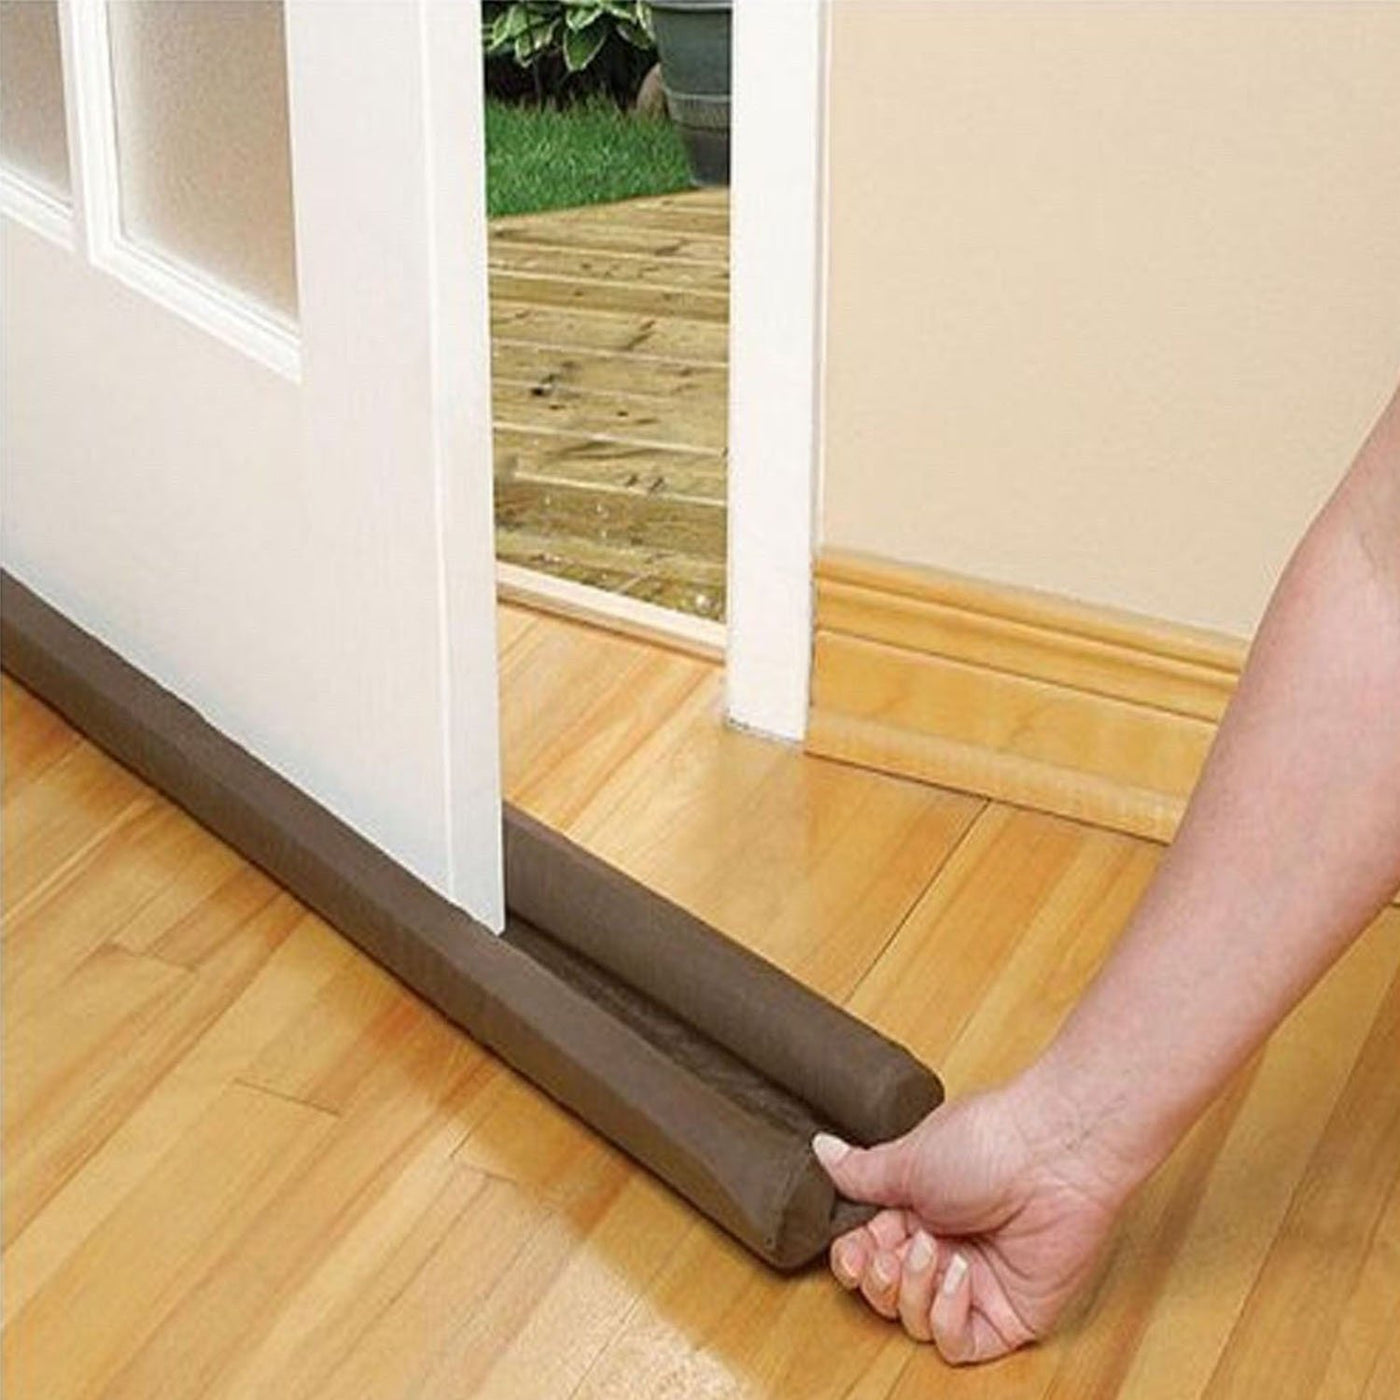 Merveilleux The Door Draft Stopper   Energy Saver And Sound Blocker   Hooked On Saving  ...